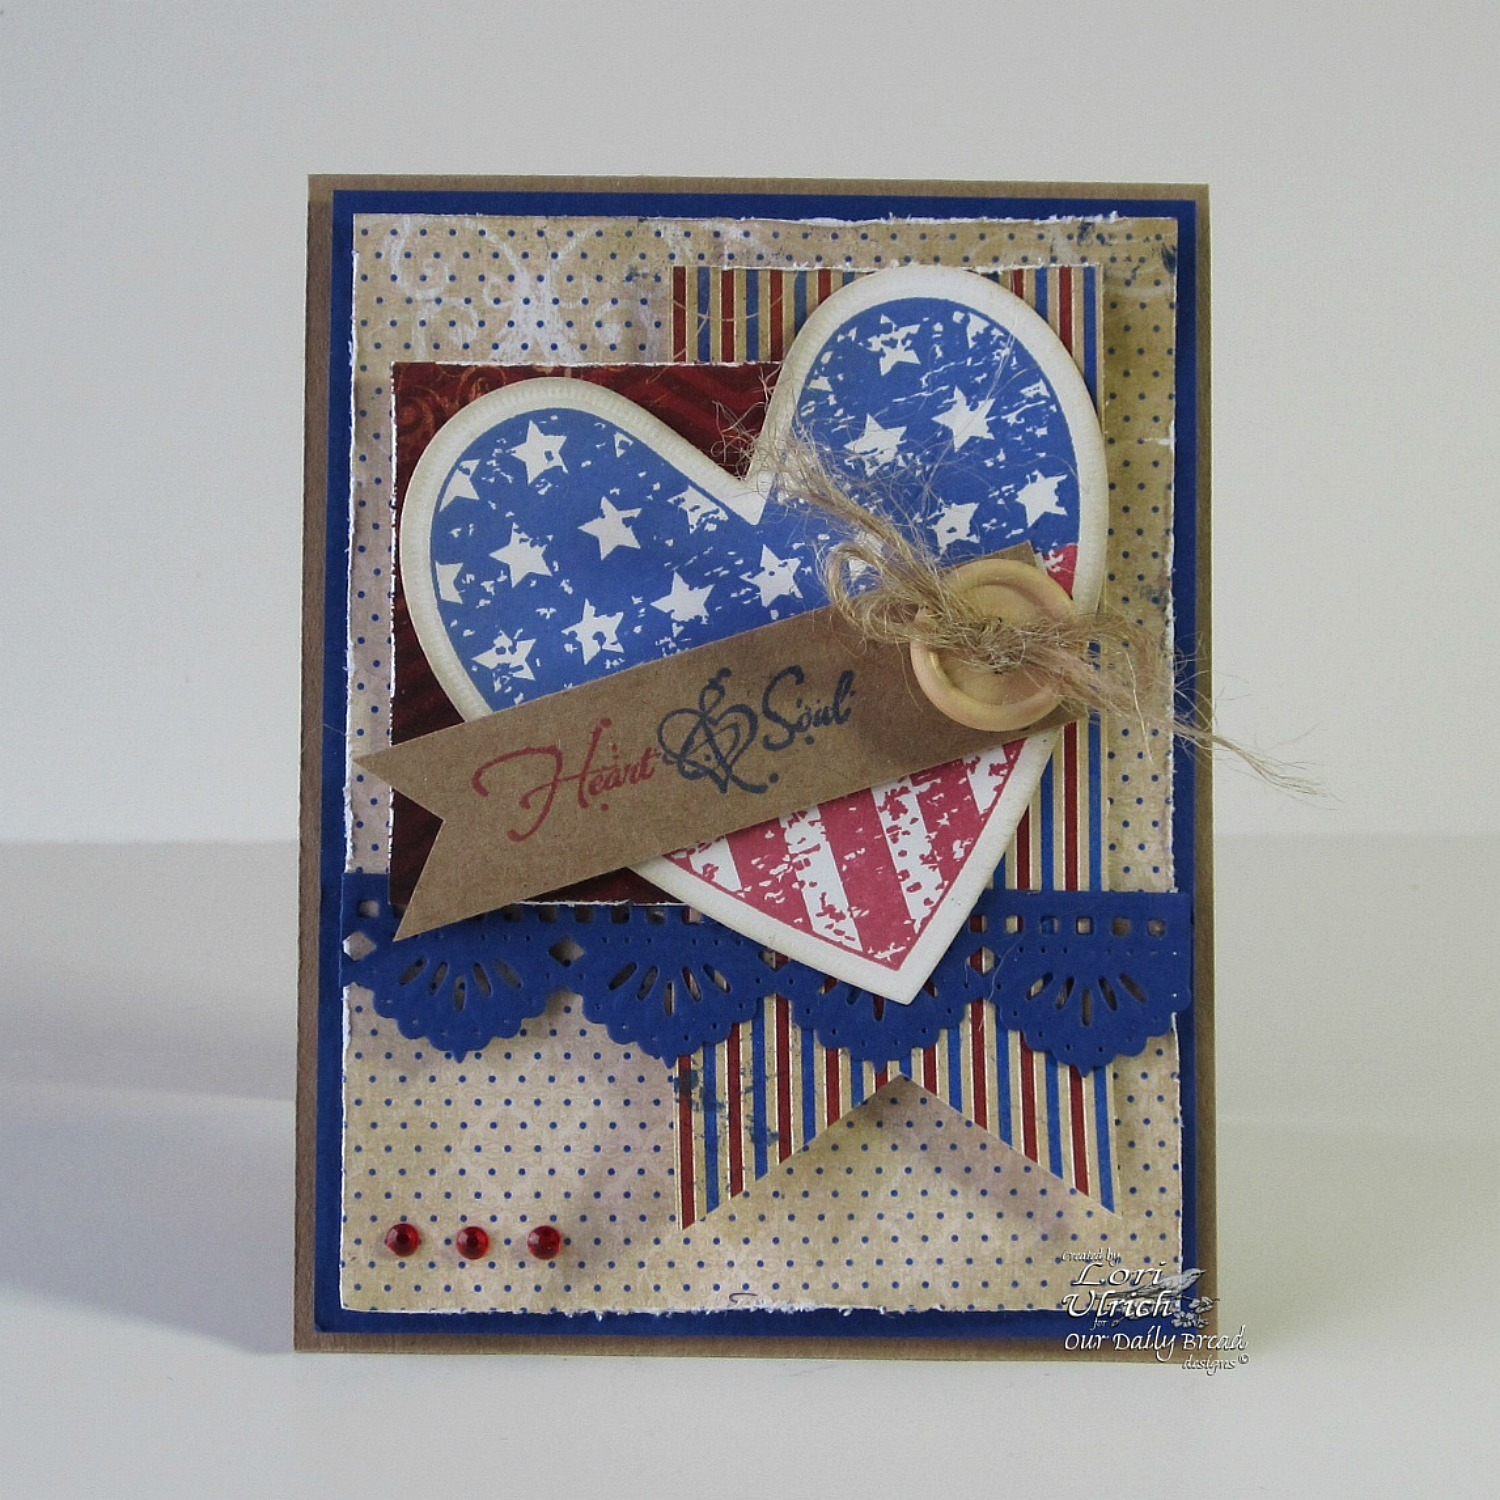 Stamps - Our Daily Bread Designs Heart and Soul, ODBD Custom Ornate Hearts Die, ODBD Custom Beautiful Borders Dies